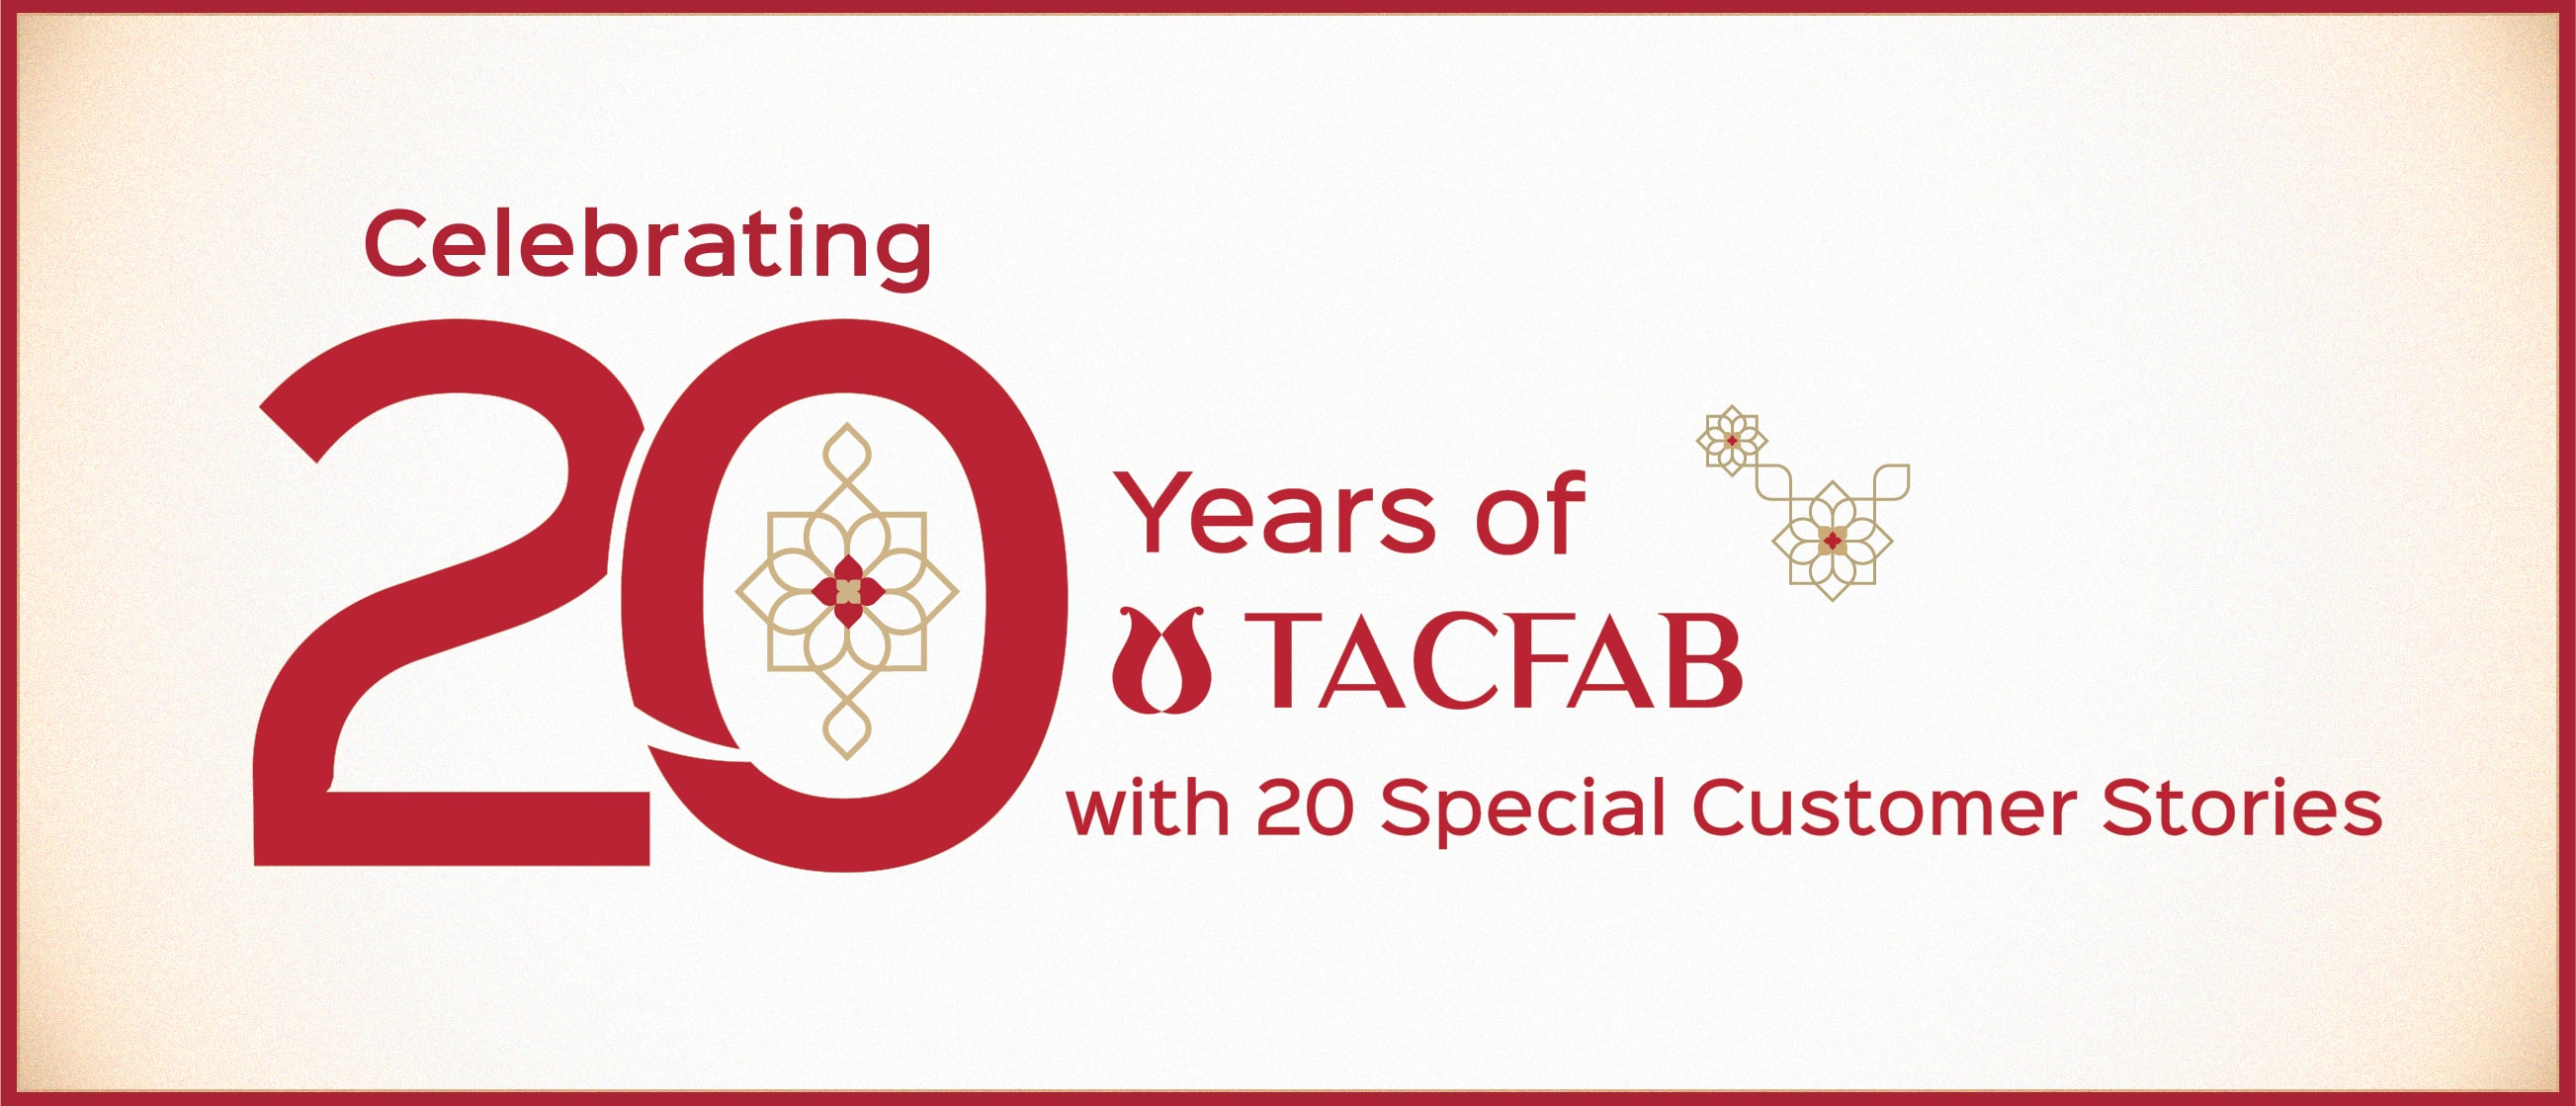 Celebrating 20 Years of Tacfab with 20 Special Customer Stories